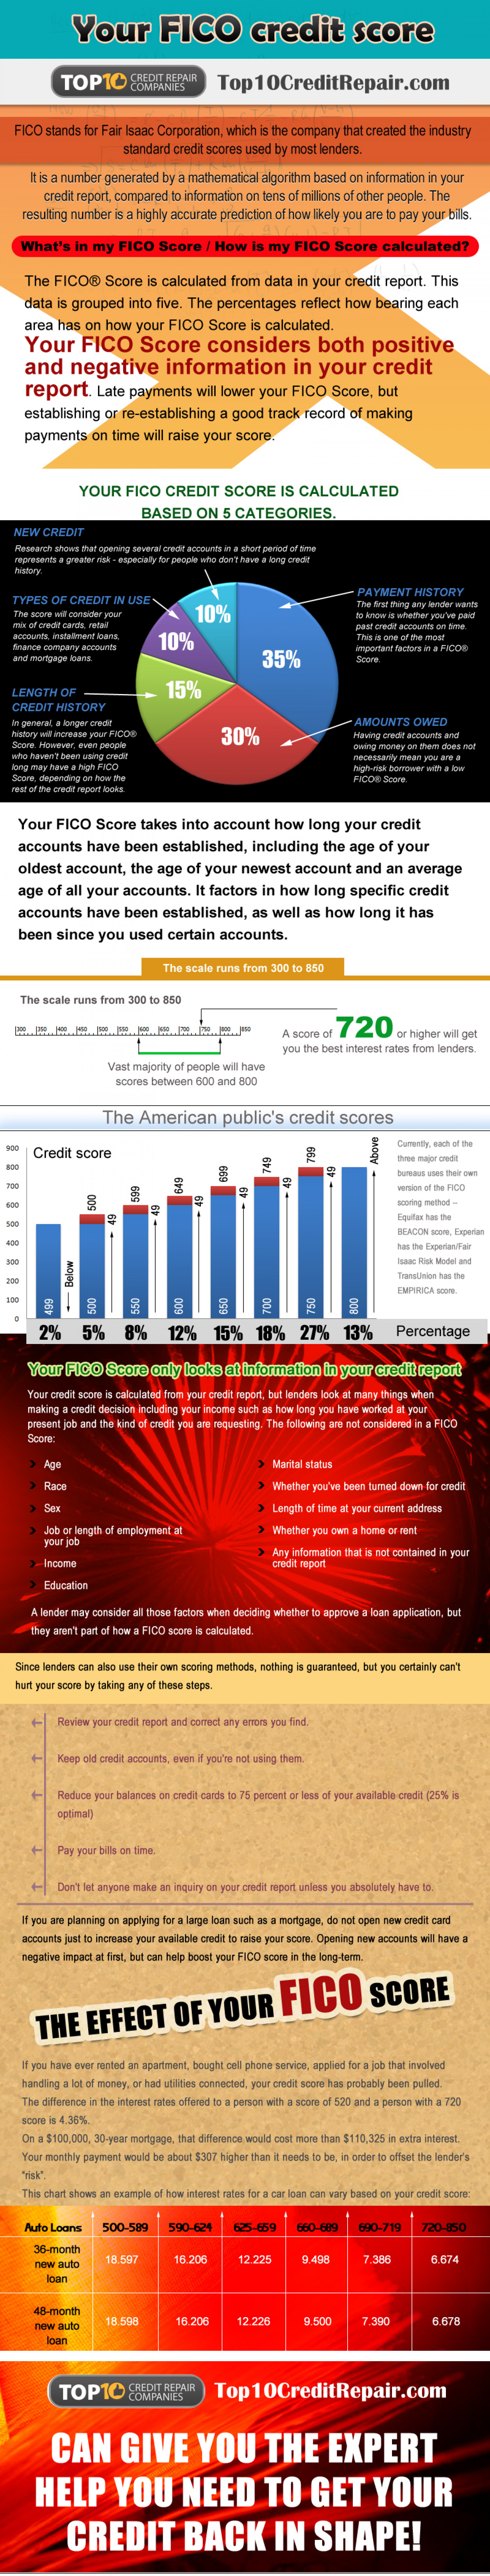 Facts About Your FICO Credit Score Infographic